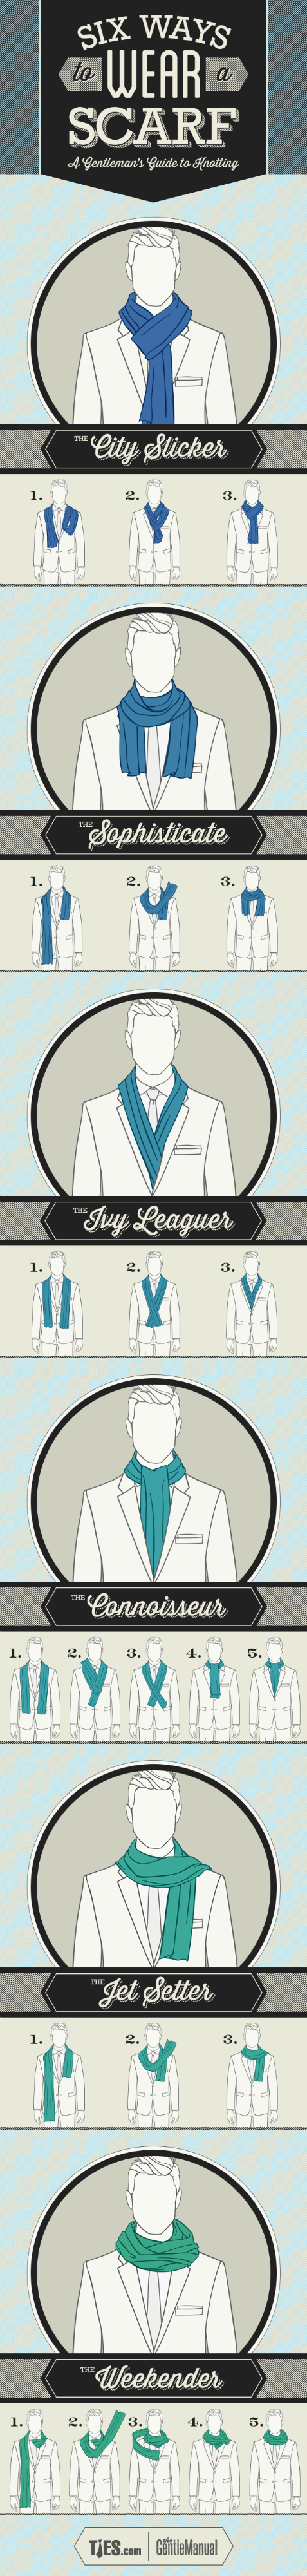 gentlemens-guide-to-scarf-tying_527d8ba4038f4